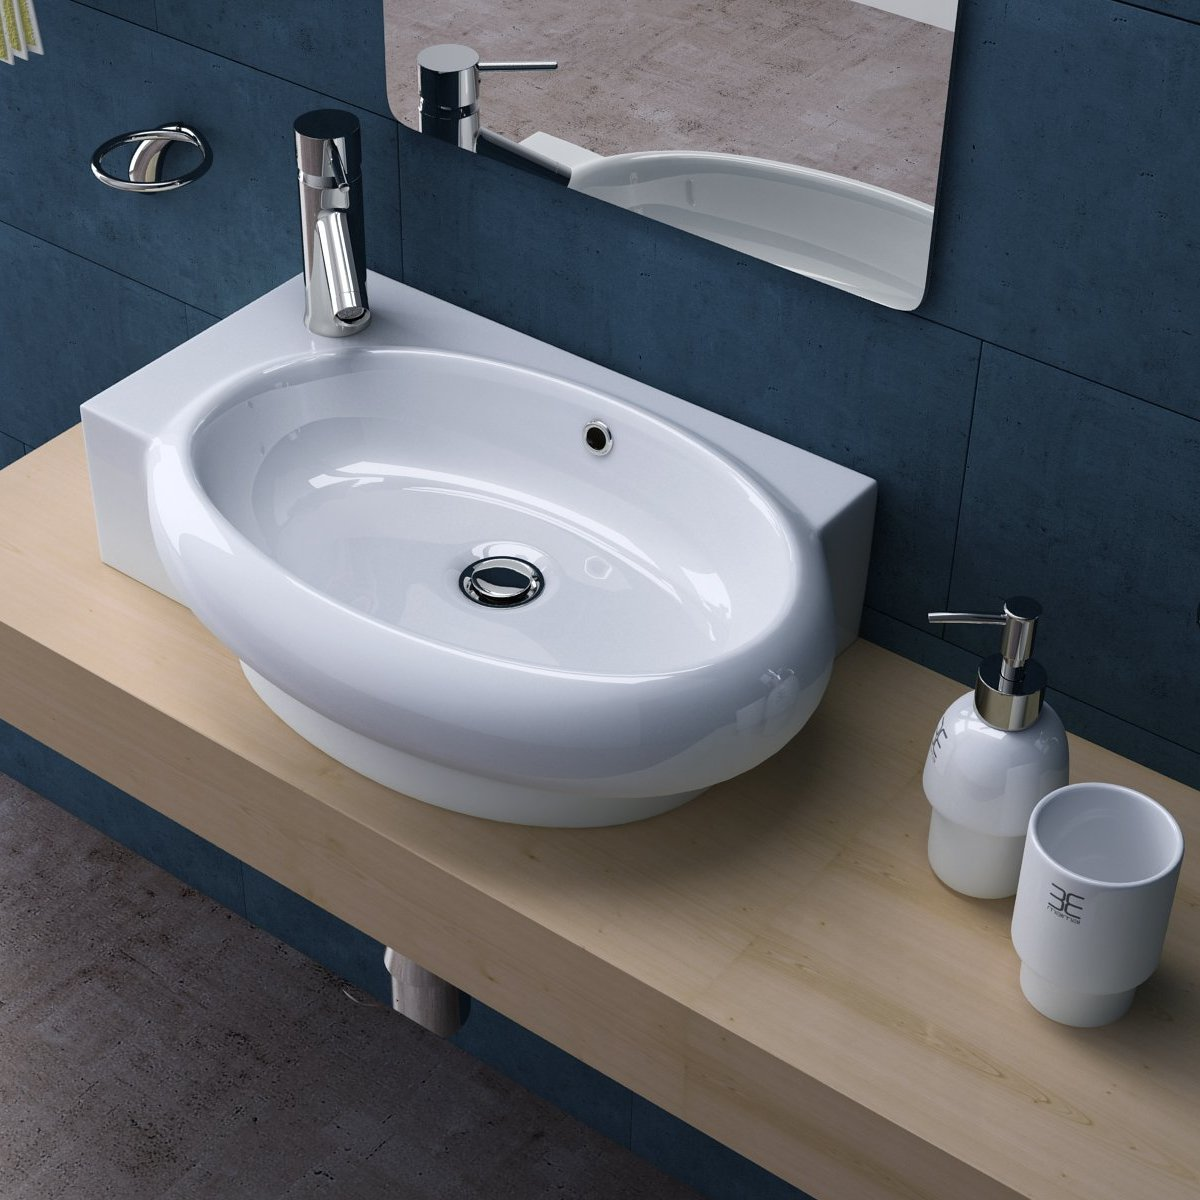 Bruessel 3052R modern ceramic oval basin, left tap hole.